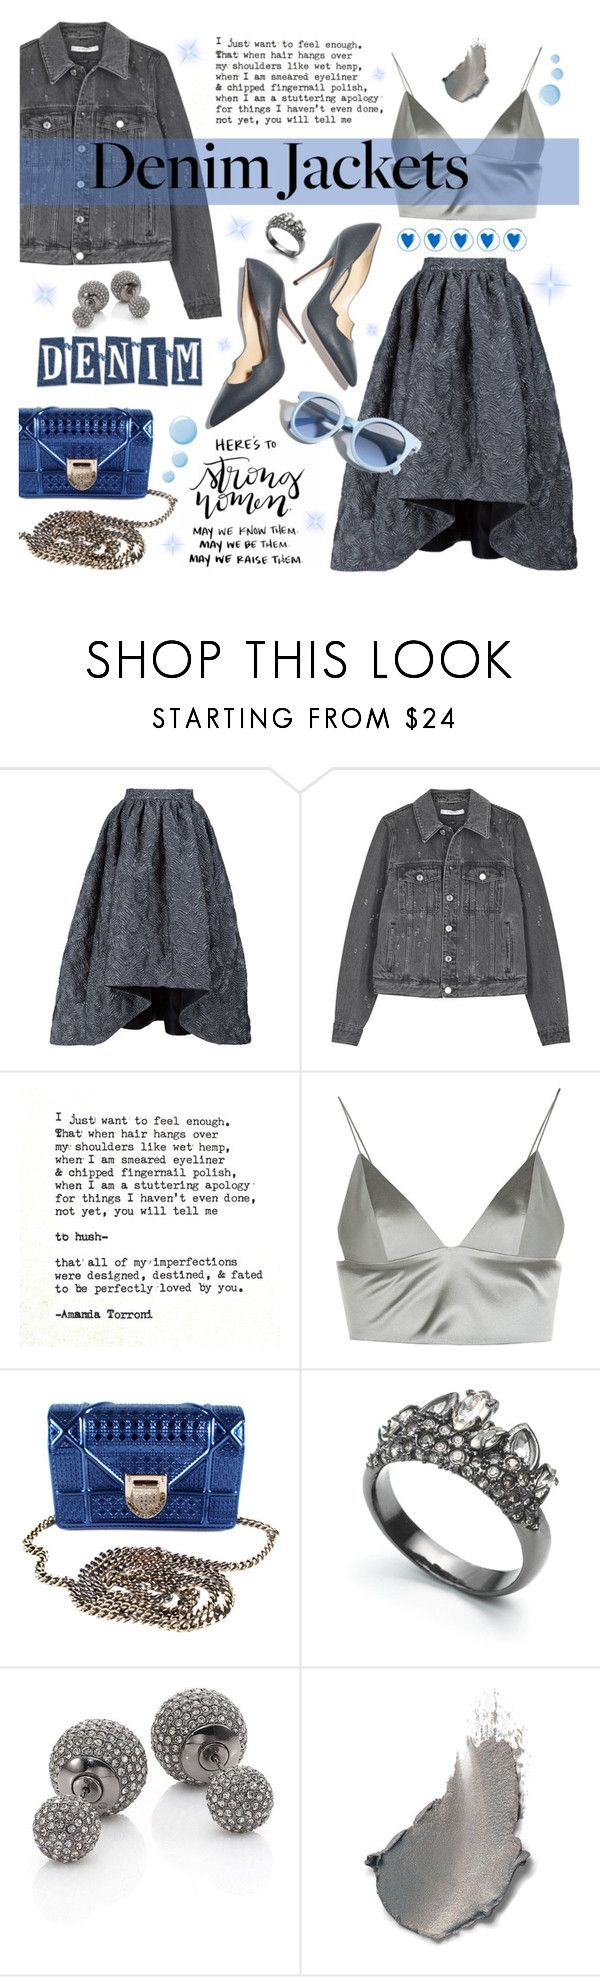 """Senza titolo #853"" by francescar ❤ liked on Polyvore featuring Christian Siriano, Givenchy, Hush, T By Alexander Wang, Paul Andrew, Christian Dior, Alexis Bittar, Adriana Orsini, Pinko and Topshop"